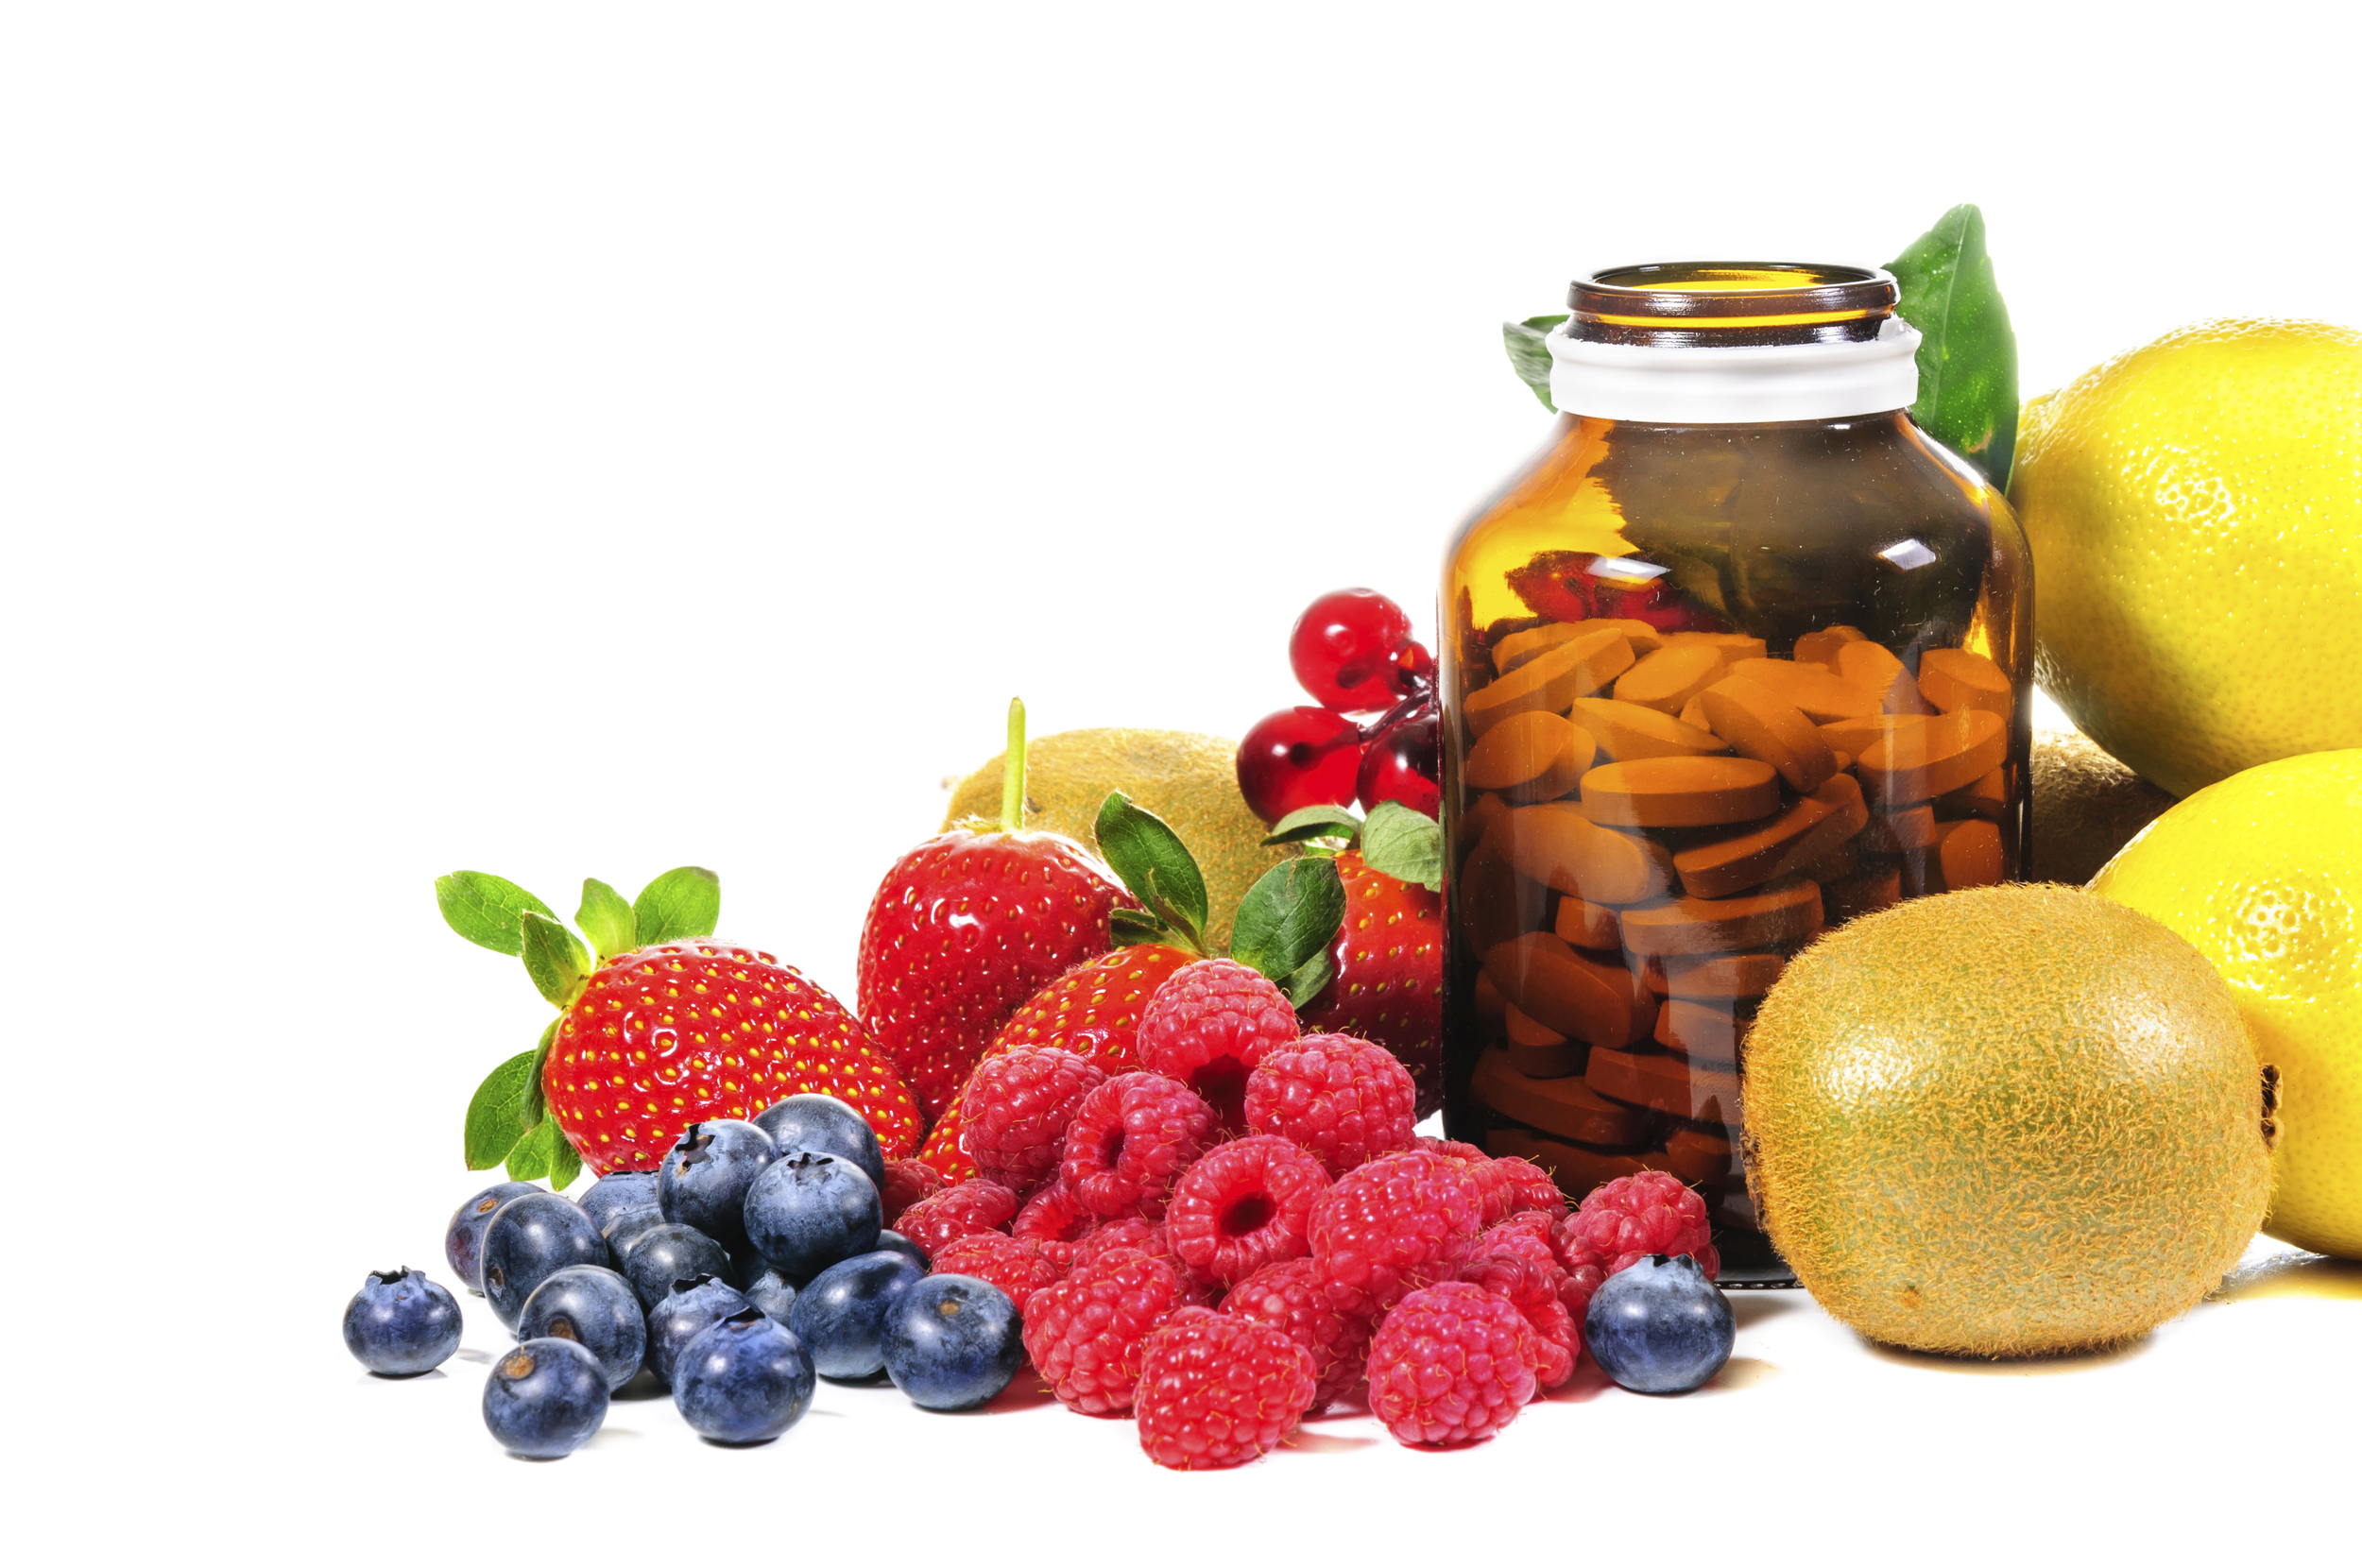 The proper balance of nutrients in your diet plus supplements is recommended to avoid inflammation in the body.